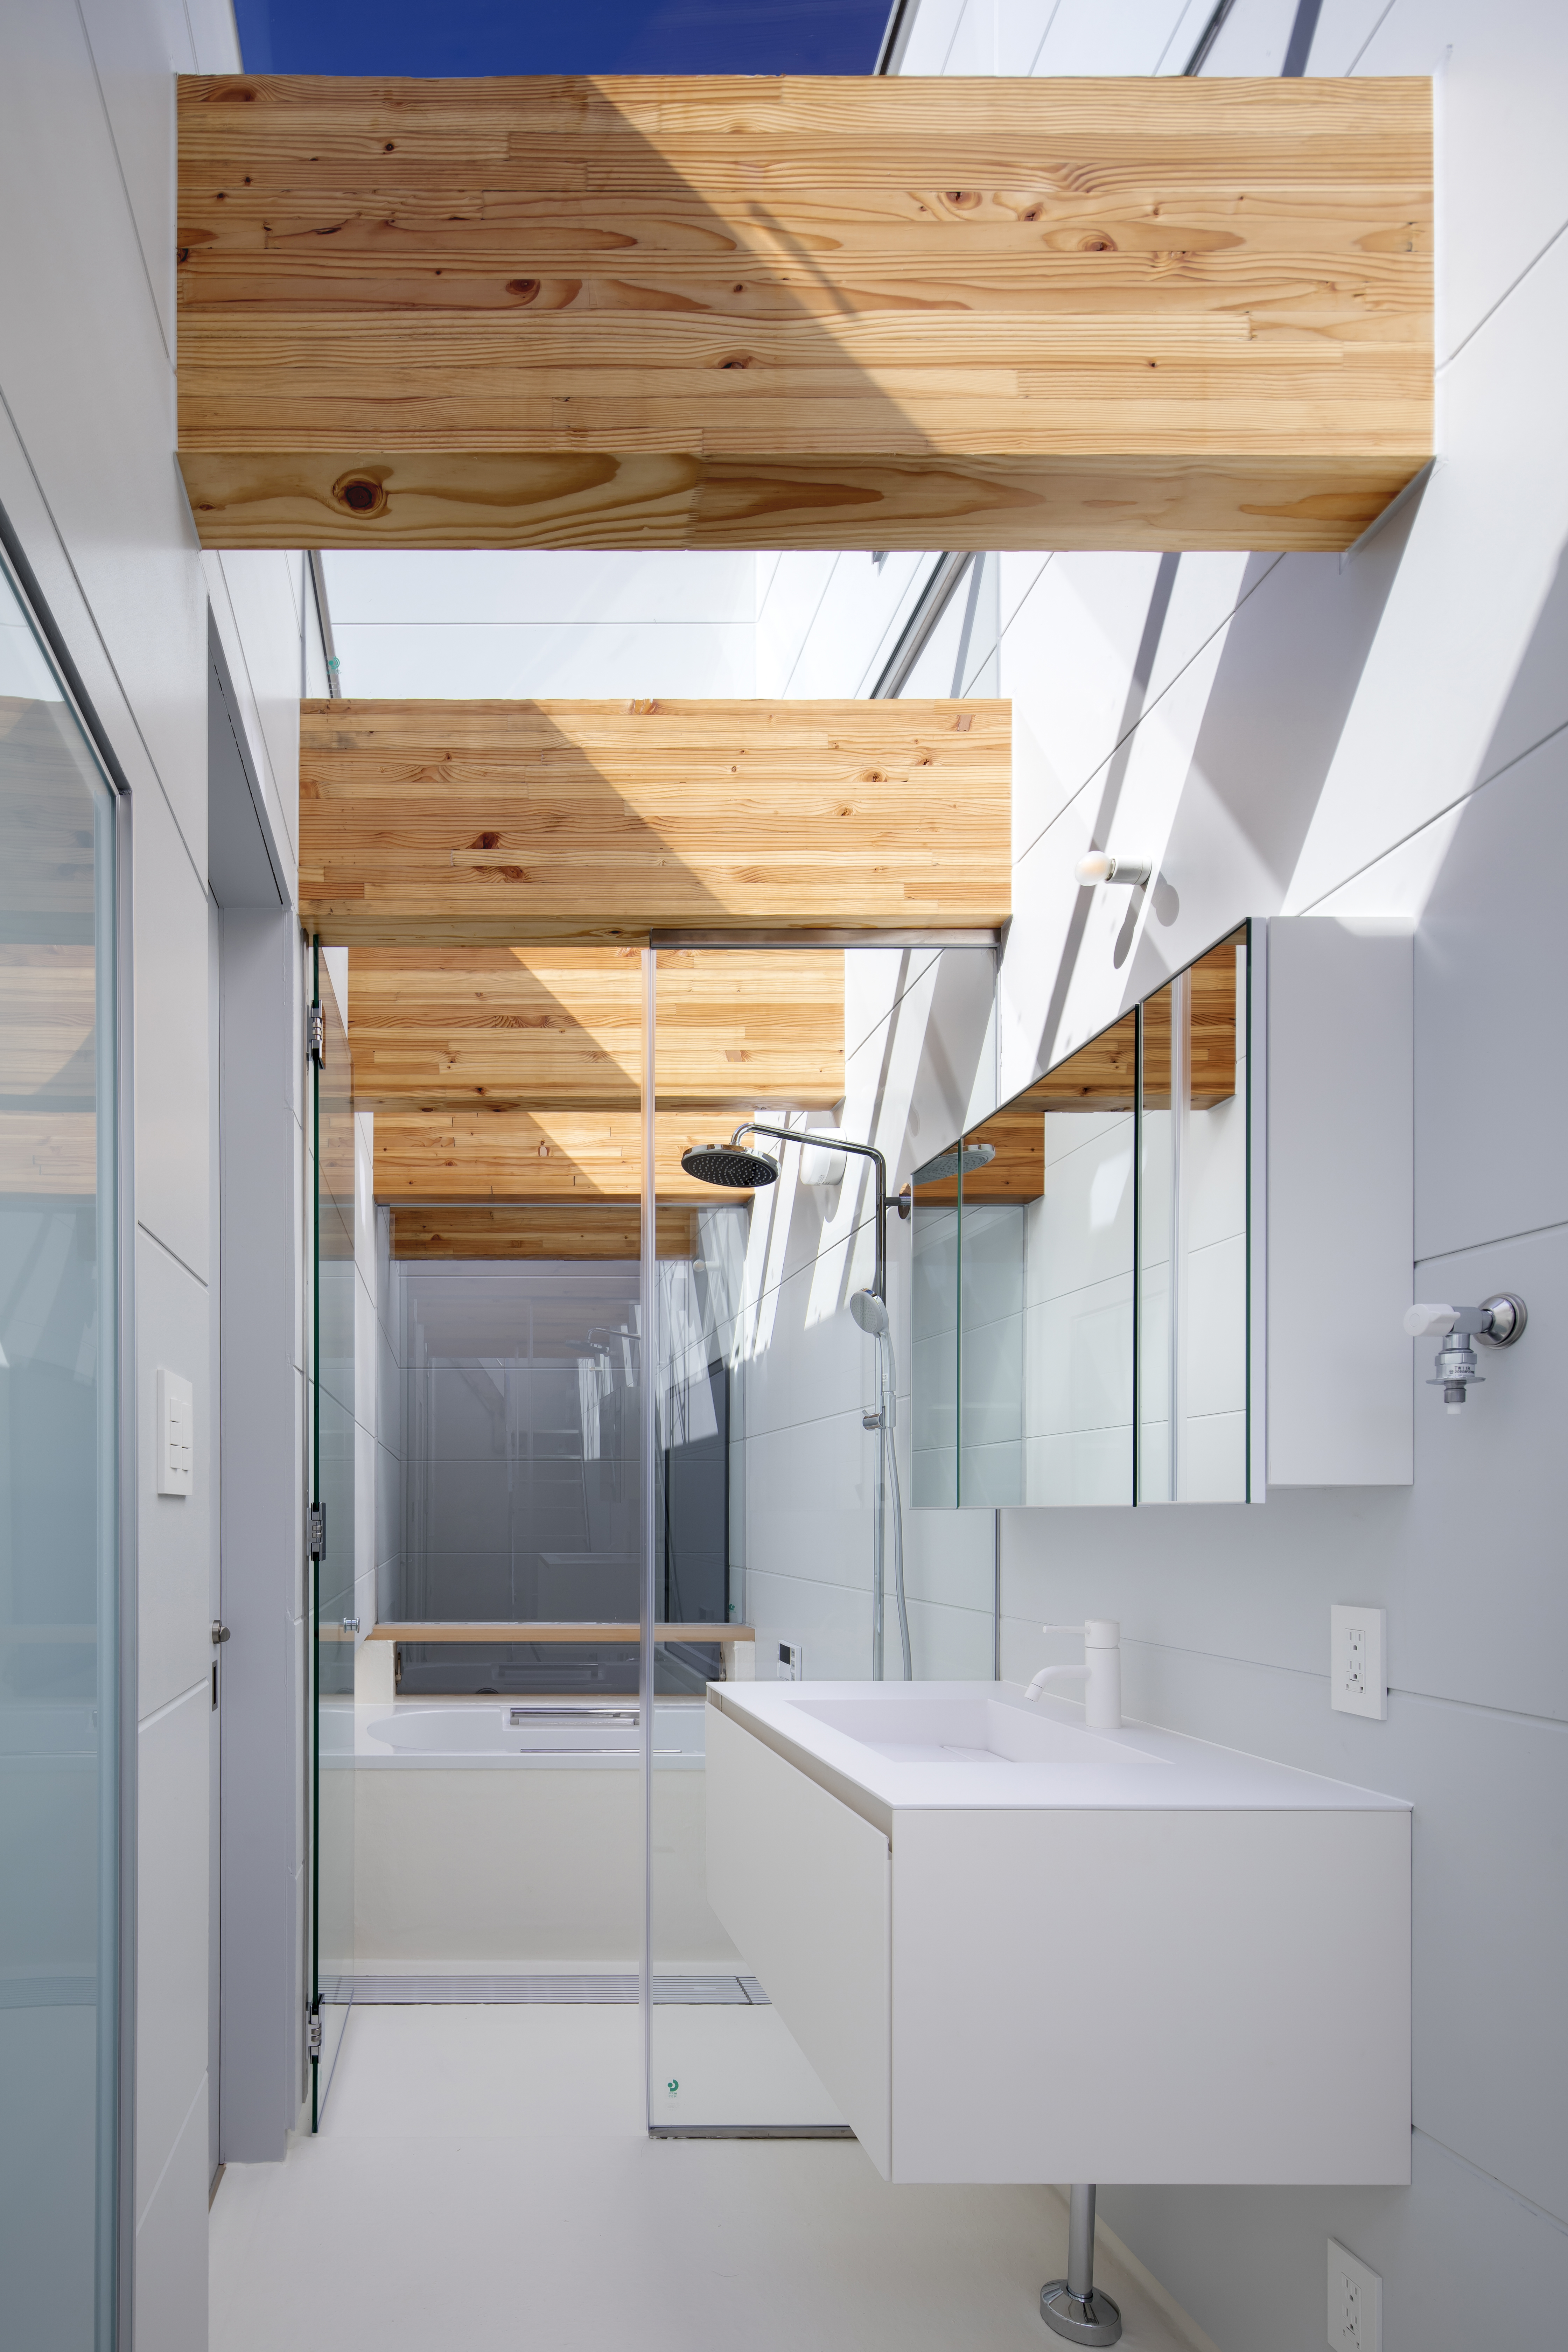 Sky View Living Space with Updraft Air Shaft beyond the shower room